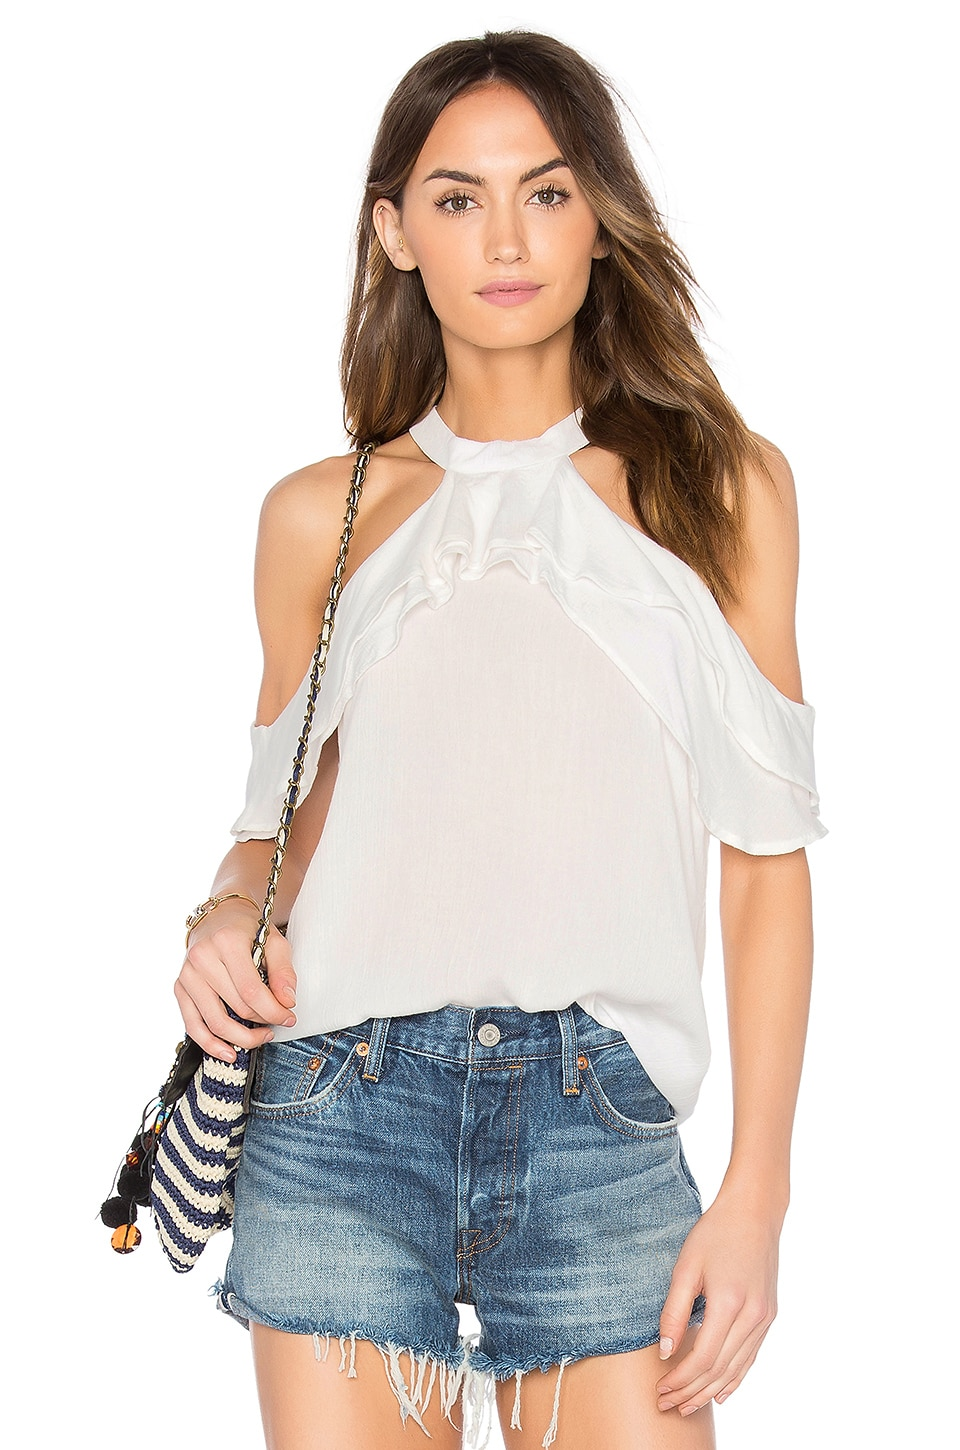 Ruffle Blouse by Band Of Gypsies